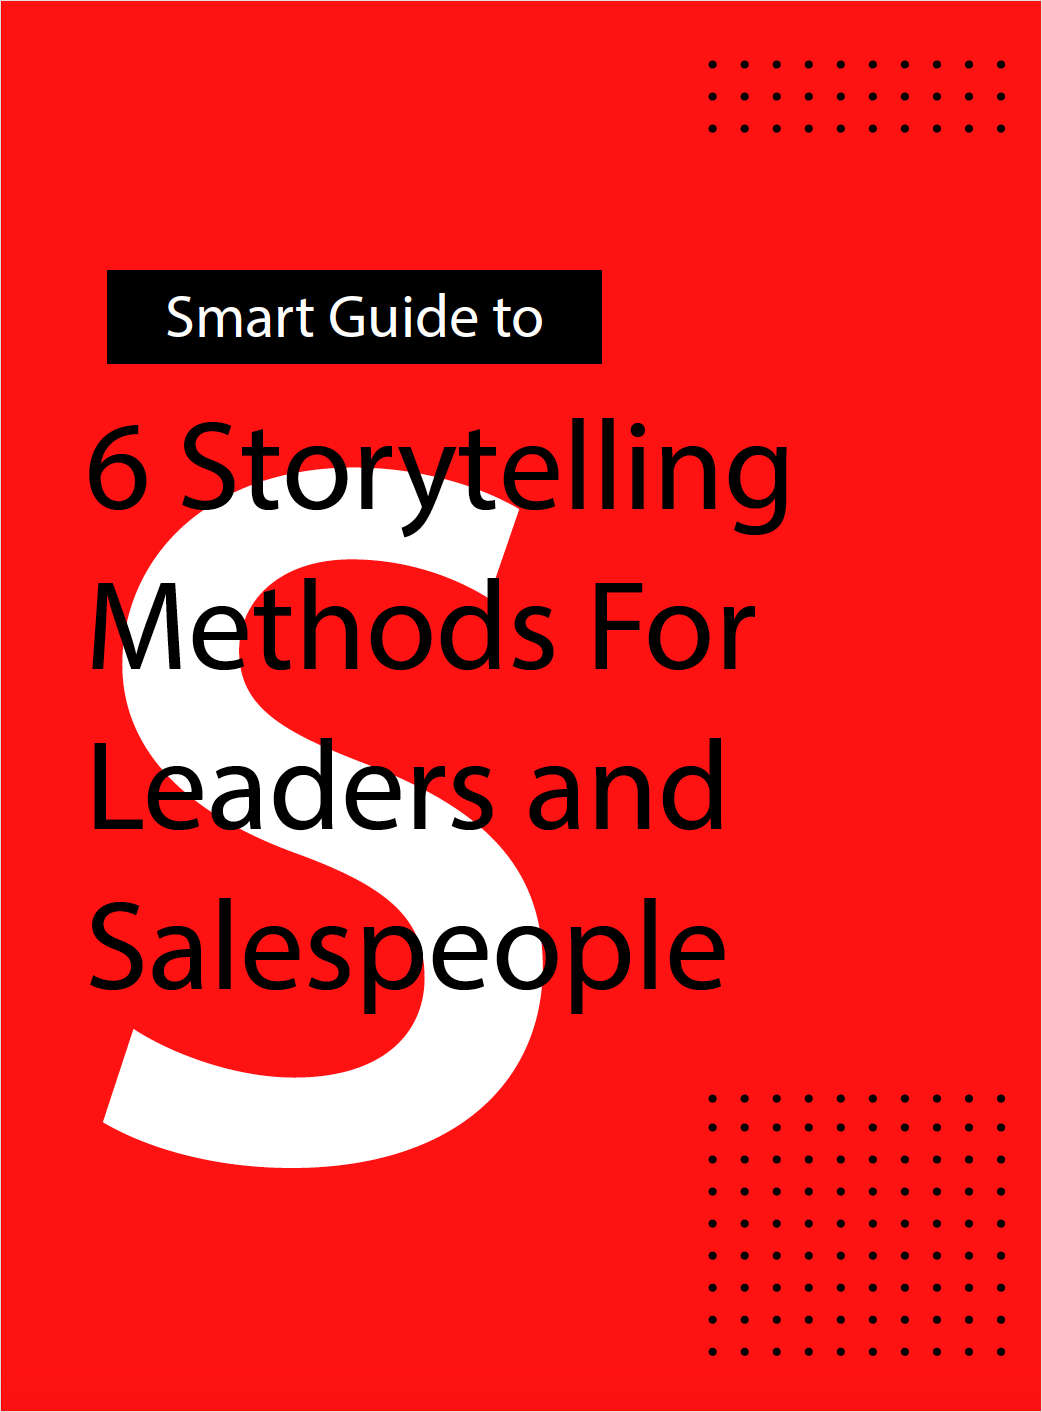 6 Storytelling Methods for Leaders and Salespeople